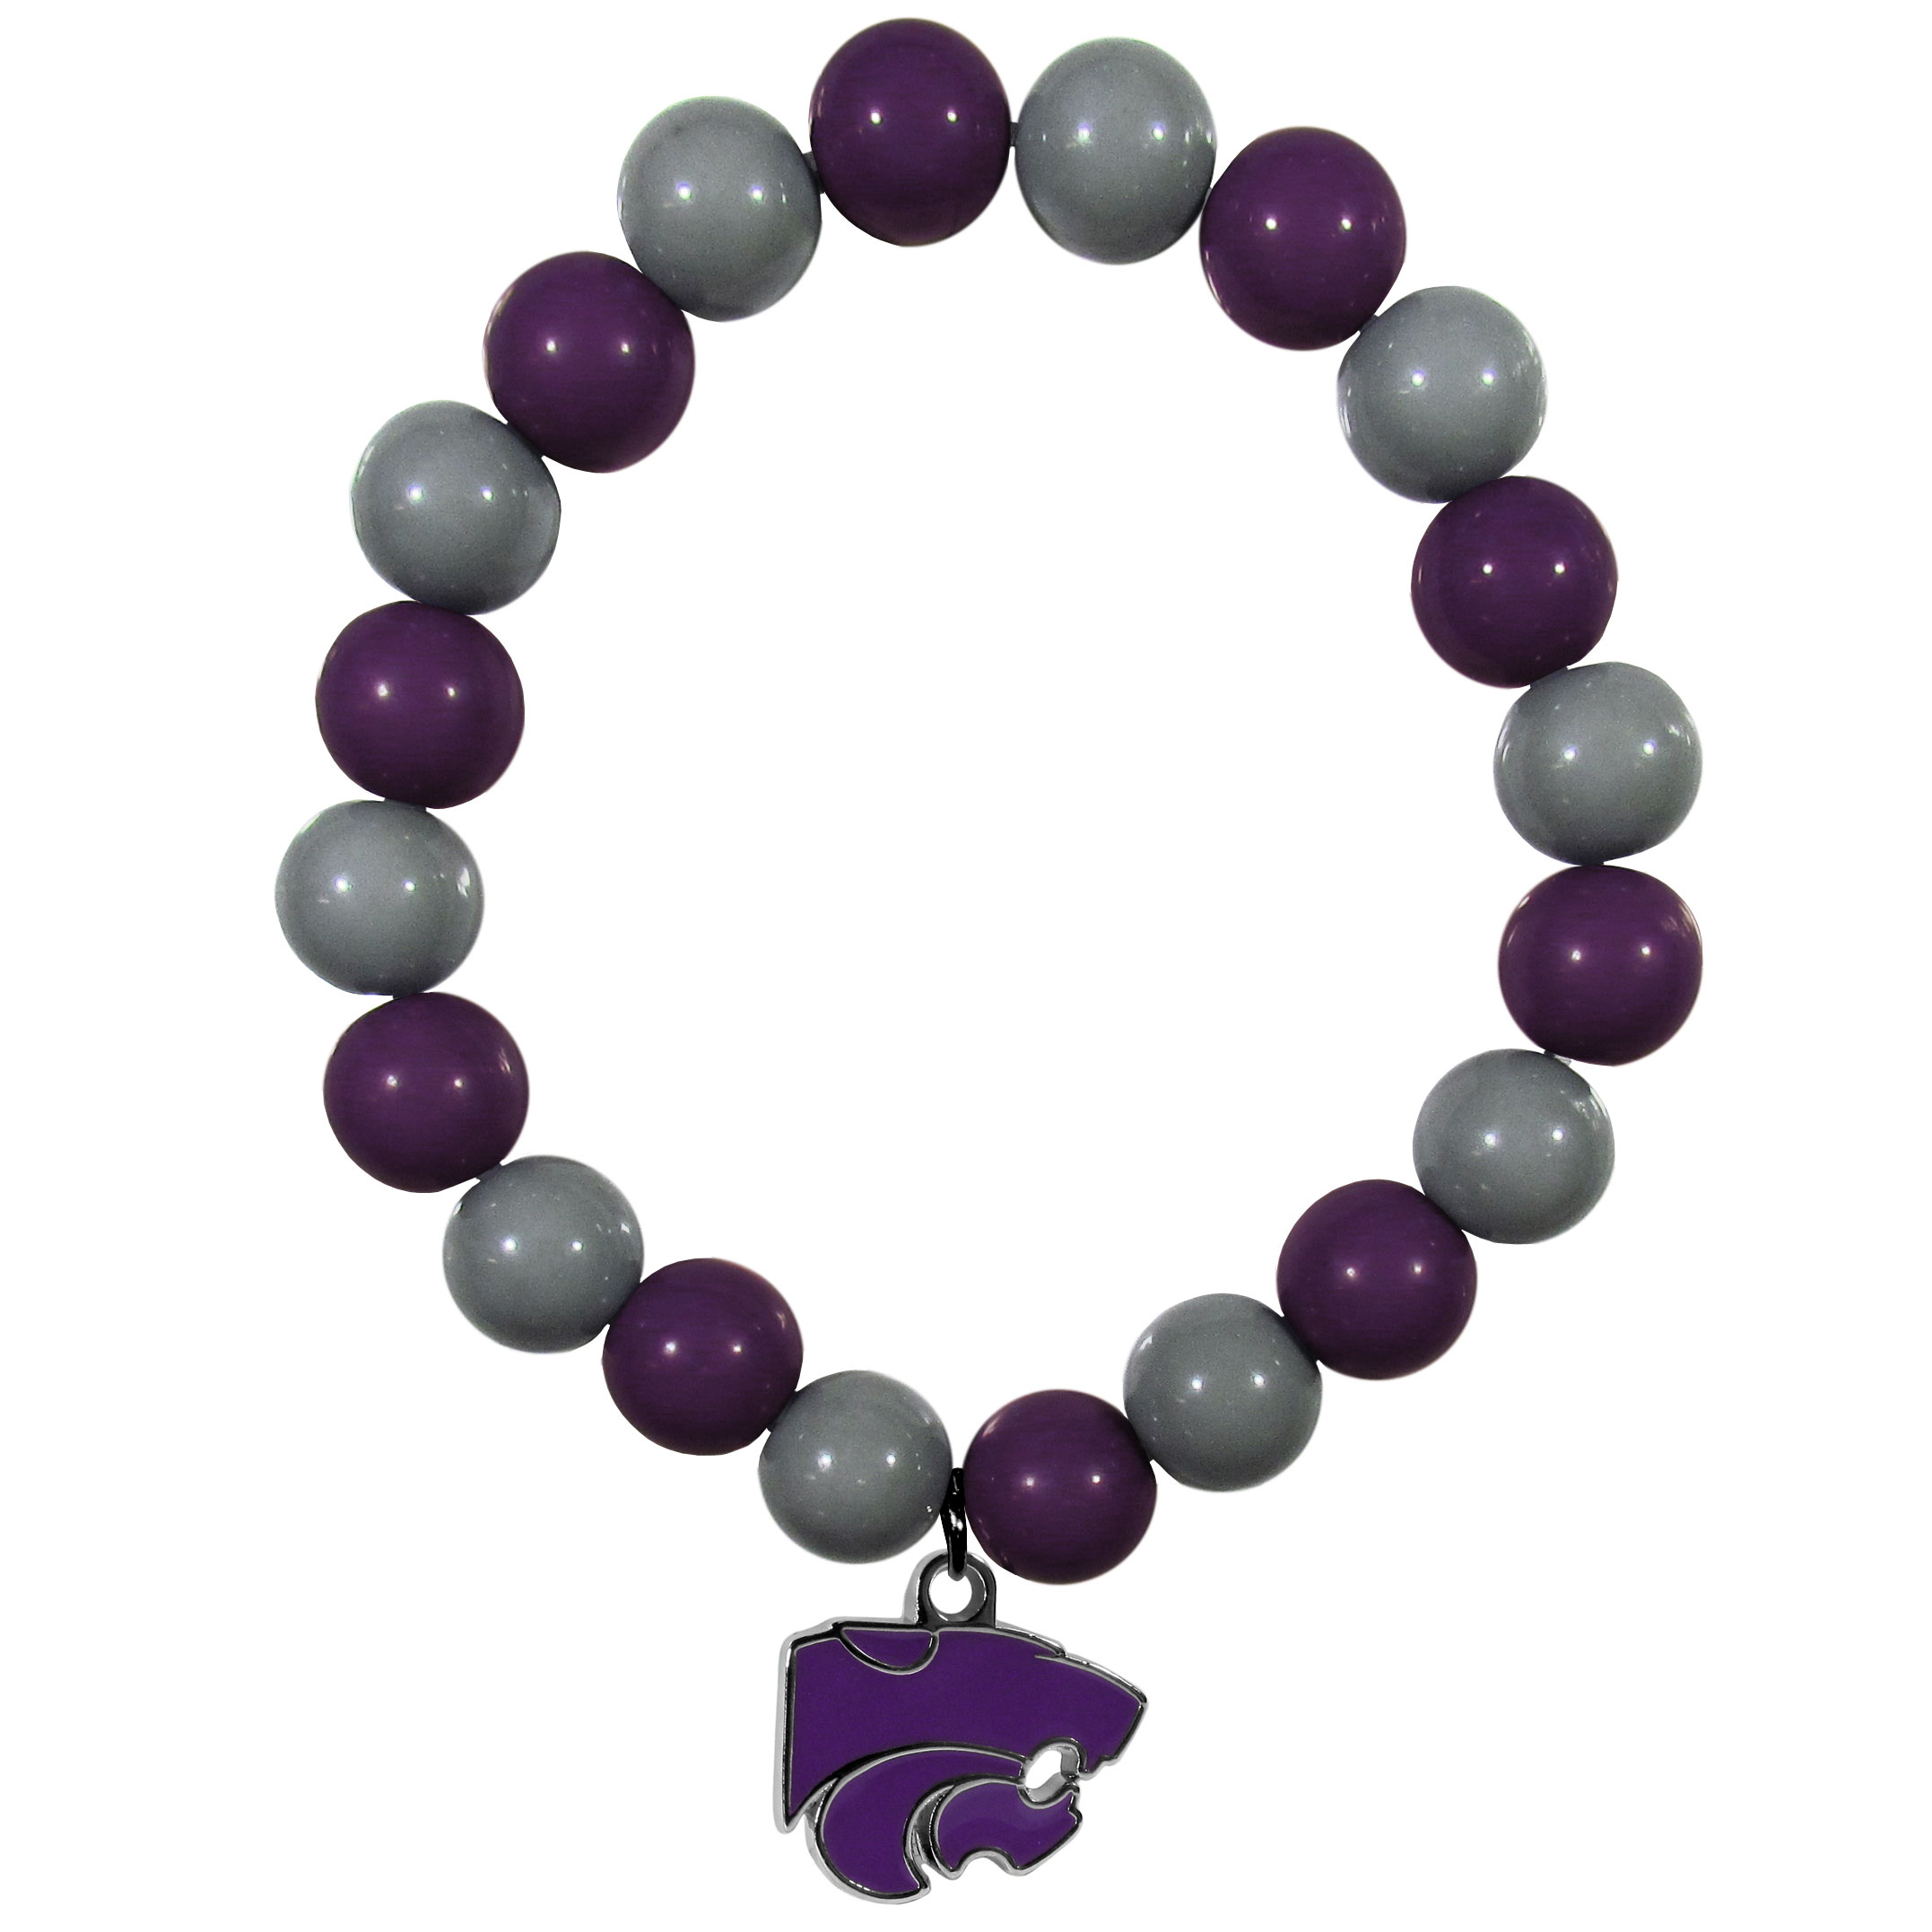 Kansas St. Wildcats Fan Bead Bracelet - Flash your Kansas St. Wildcats spirit with this bright stretch bracelet. This new bracelet features multicolored team beads on stretch cord with a nickel-free enameled chrome team charm. This bracelet adds the perfect pop of color to your game day accessories.